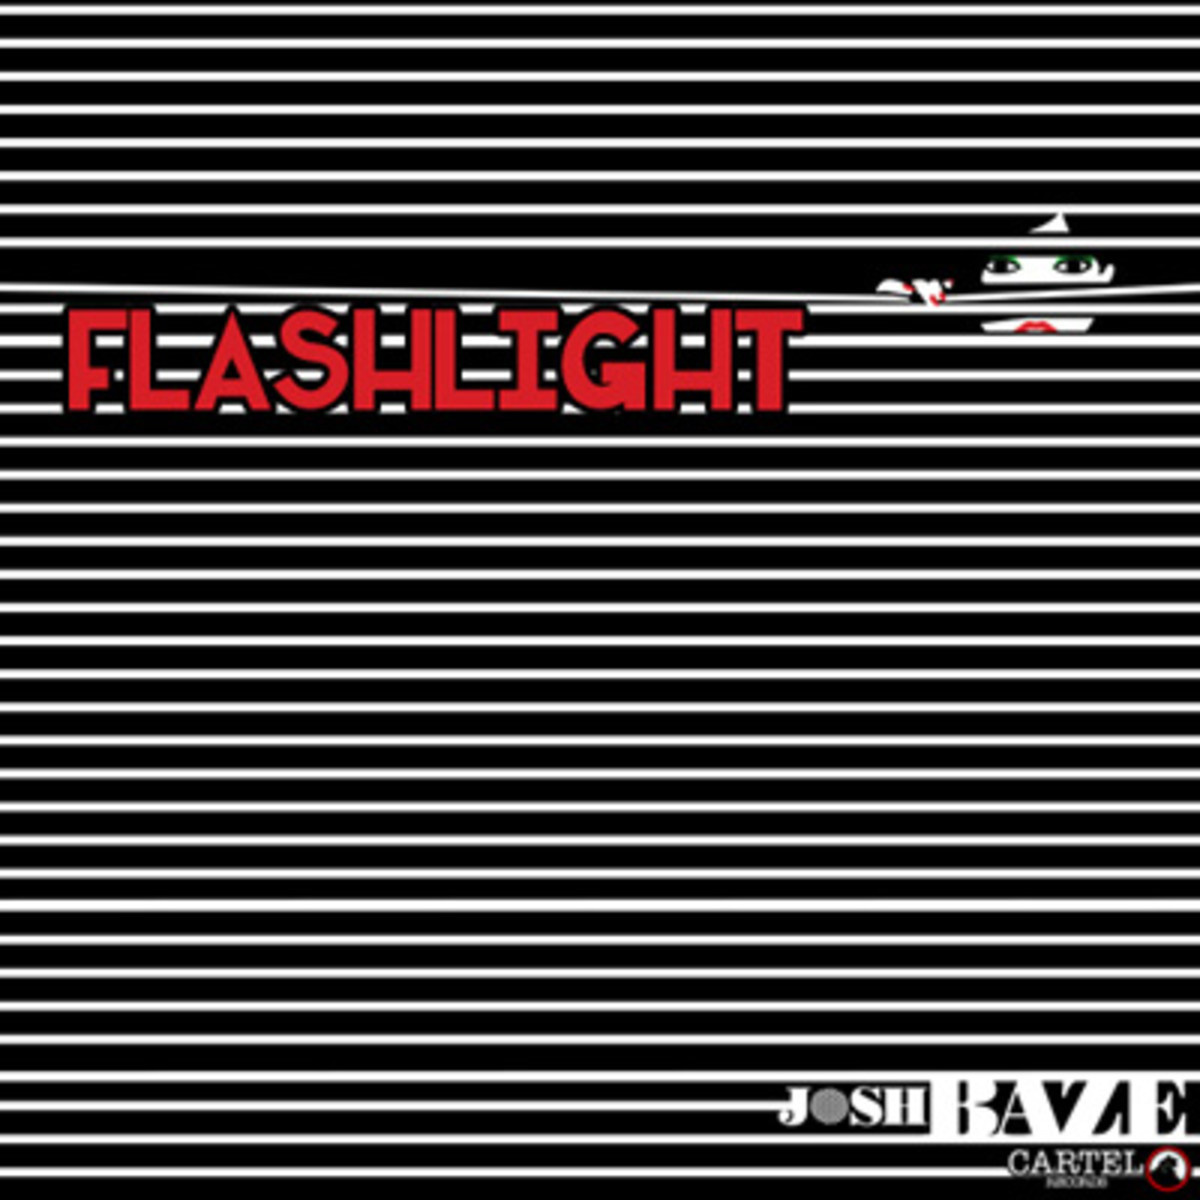 joshbaze-flashlight.jpg